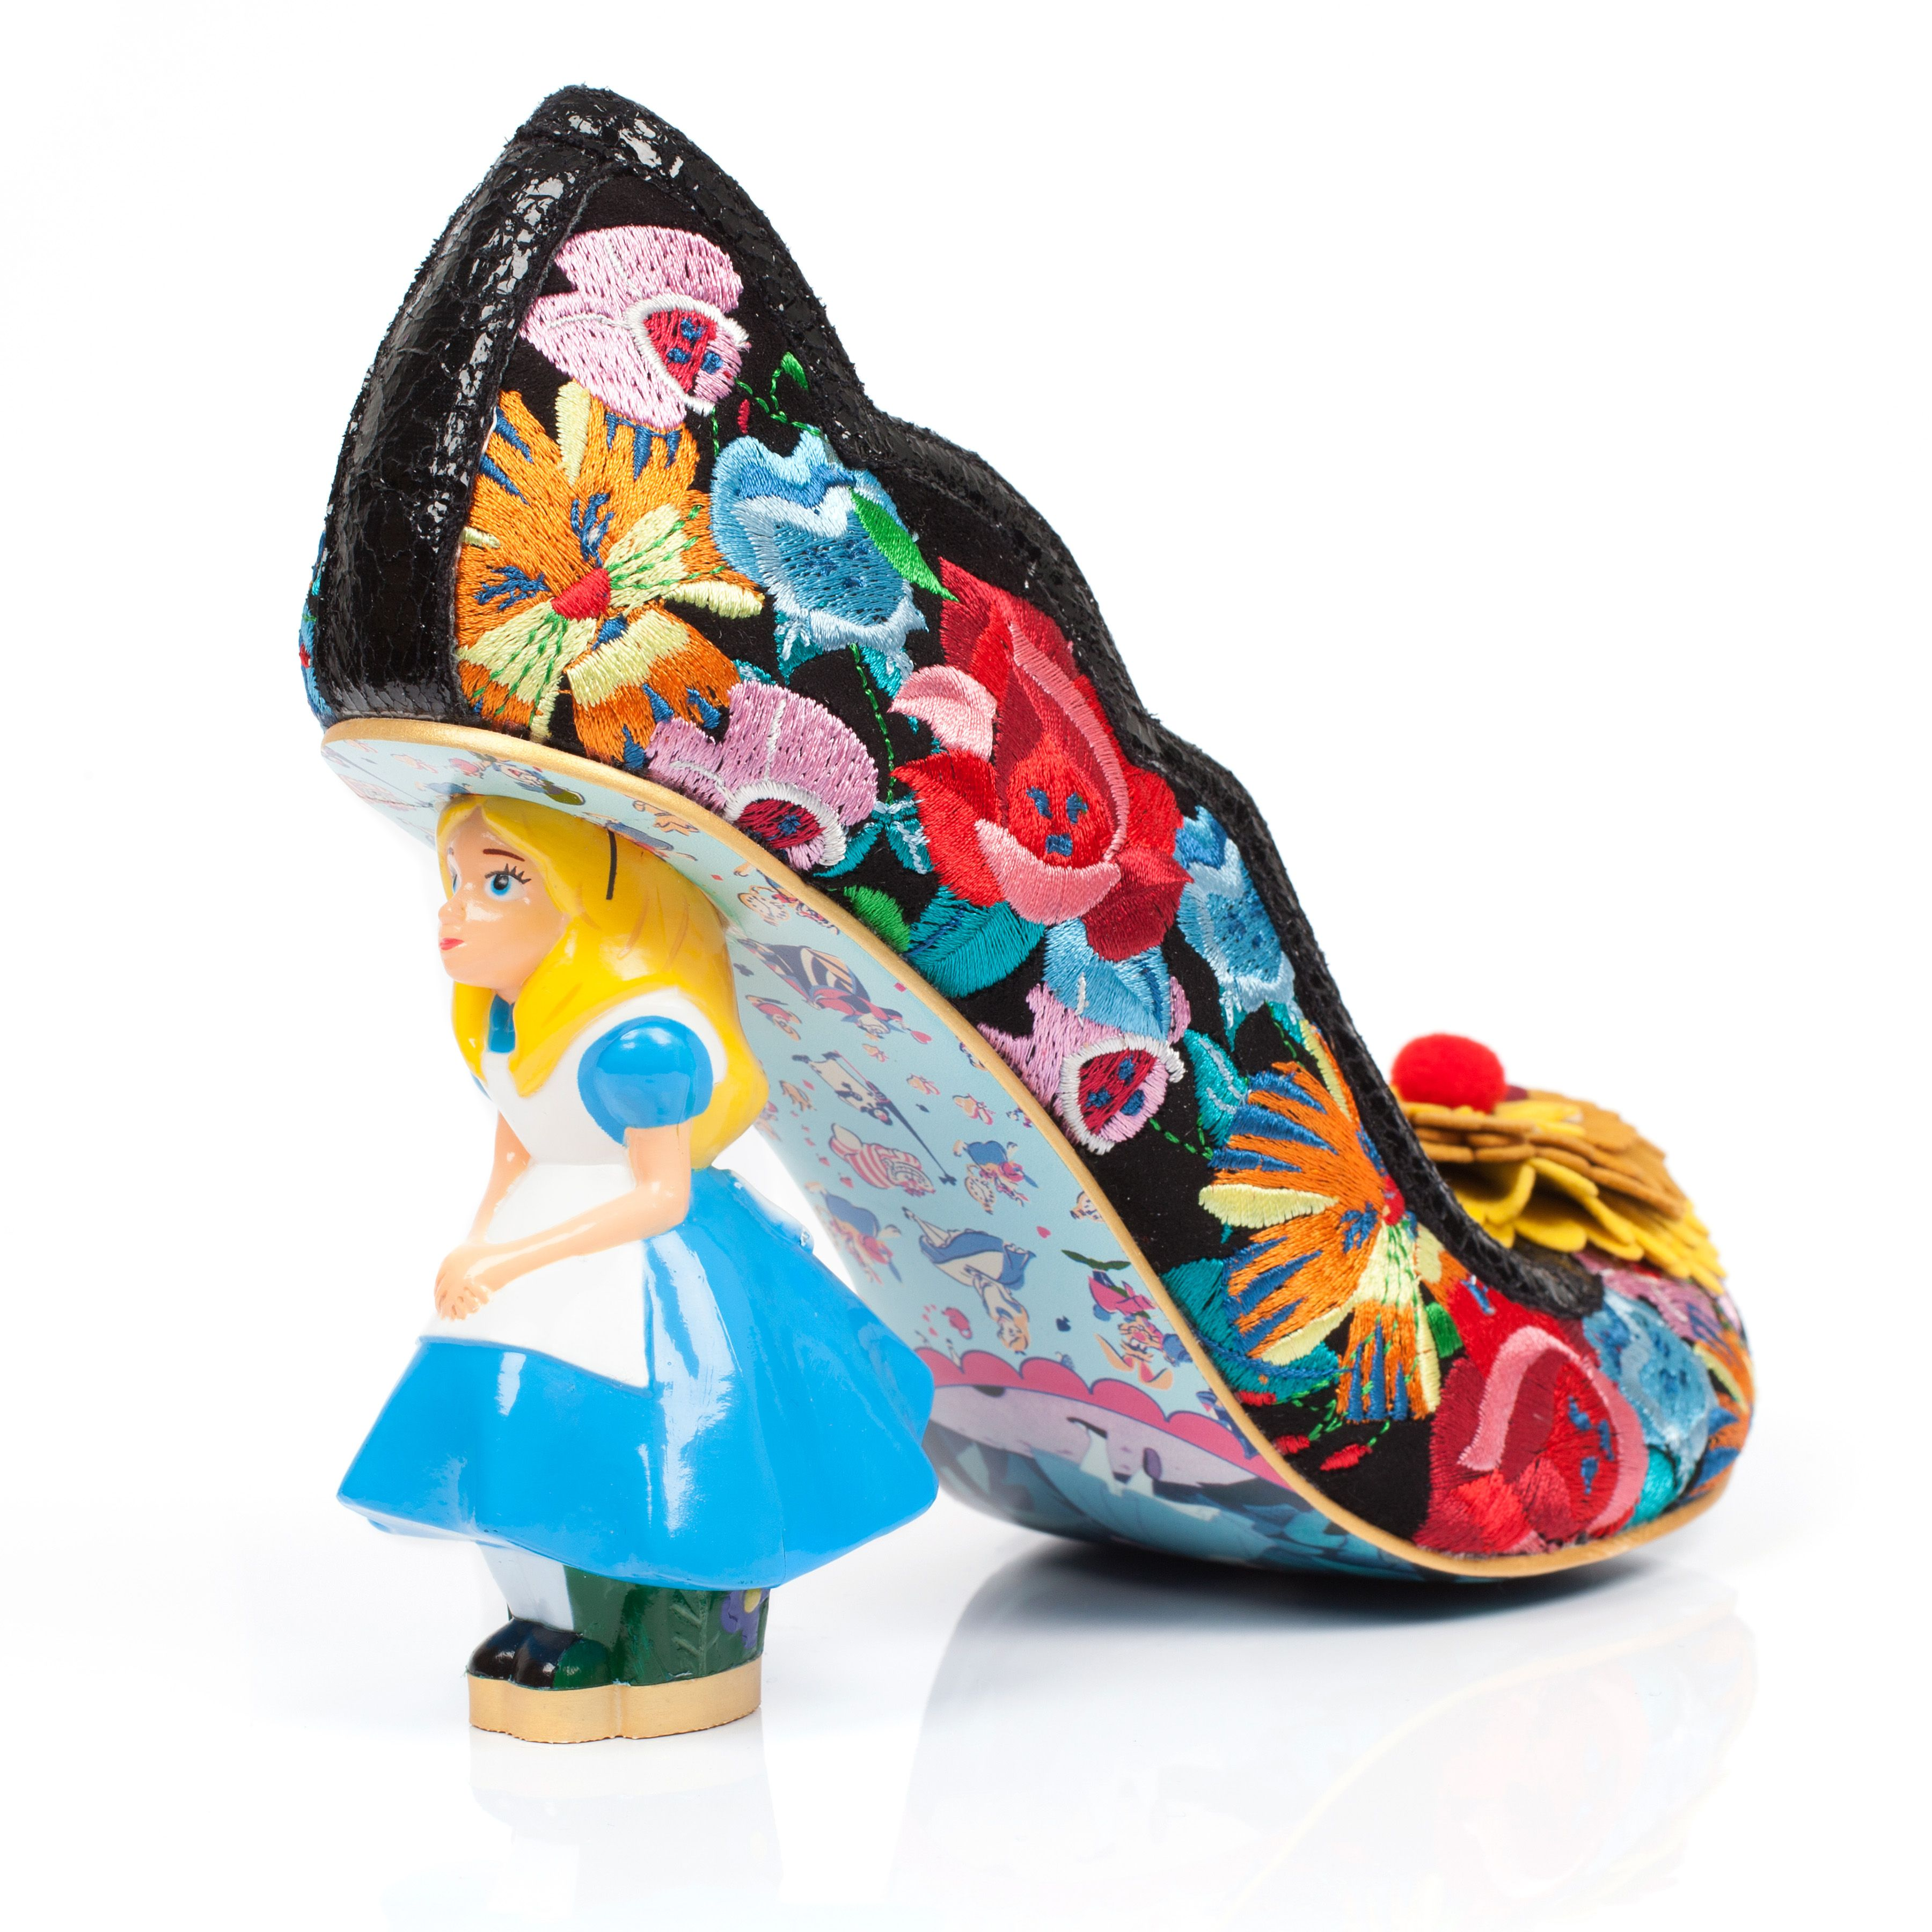 b3f8ae9b97 Irregular Choice has partnered with Disney to create the shoe collection of  our dreams.